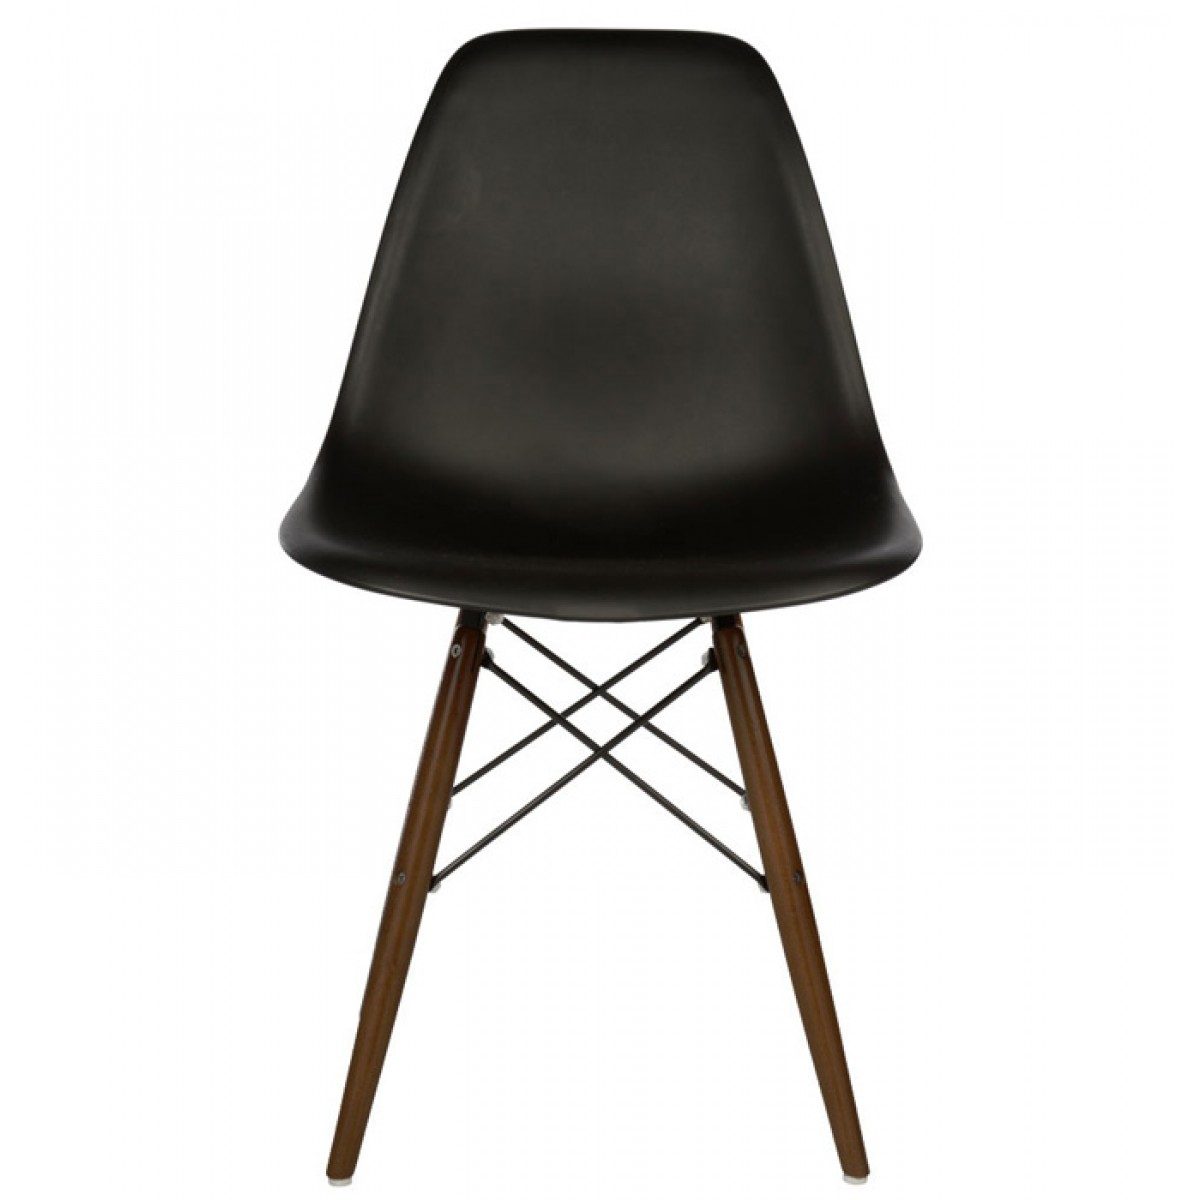 Eames Style Dsw Molded Black Plastic Dining Shell Chair